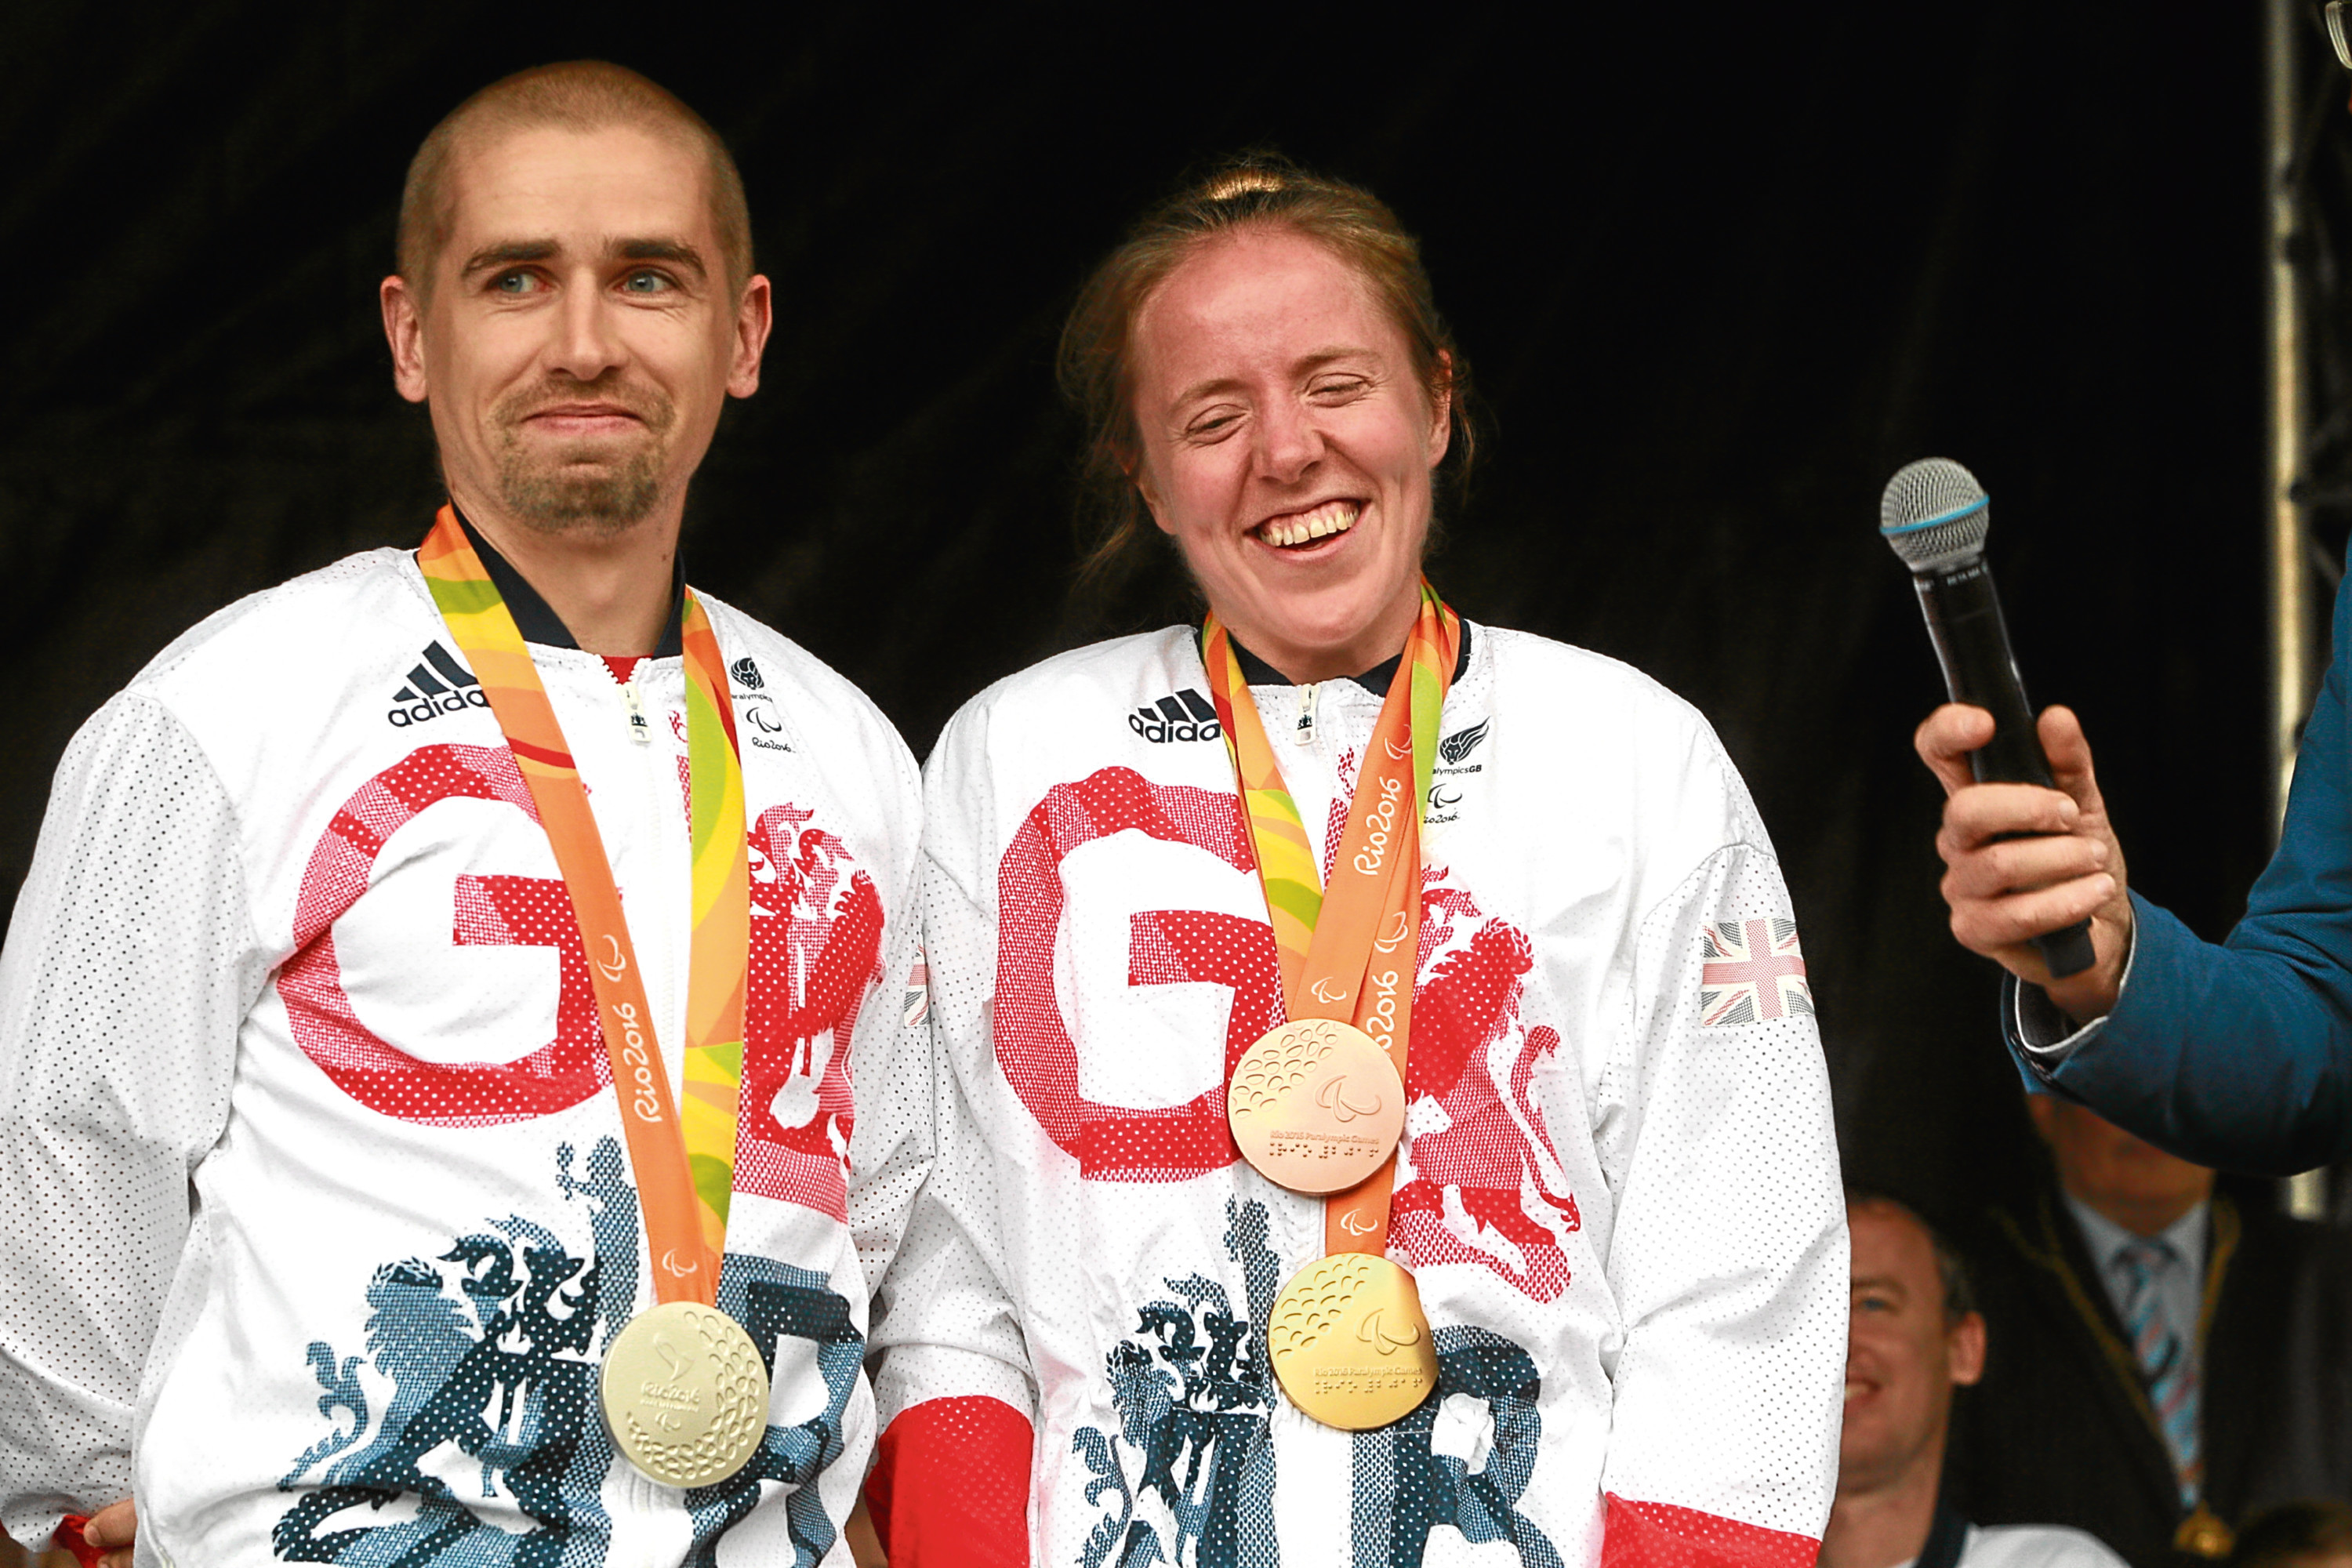 Neil and Lora Fachie with their Rio Paralympics medals.